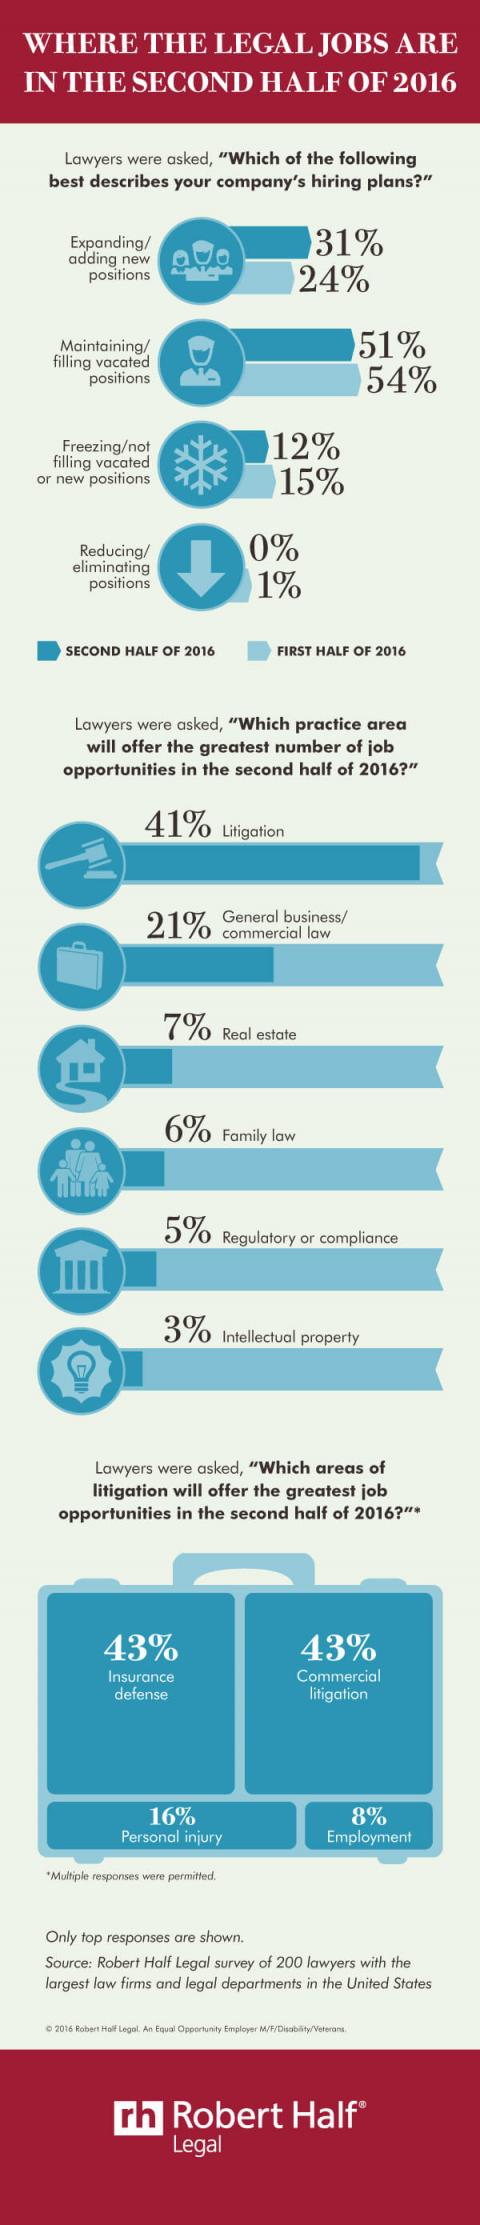 An infographic featuring the results of a survey about job prospects for legal  professionals in the U.S. for the second half of 2016